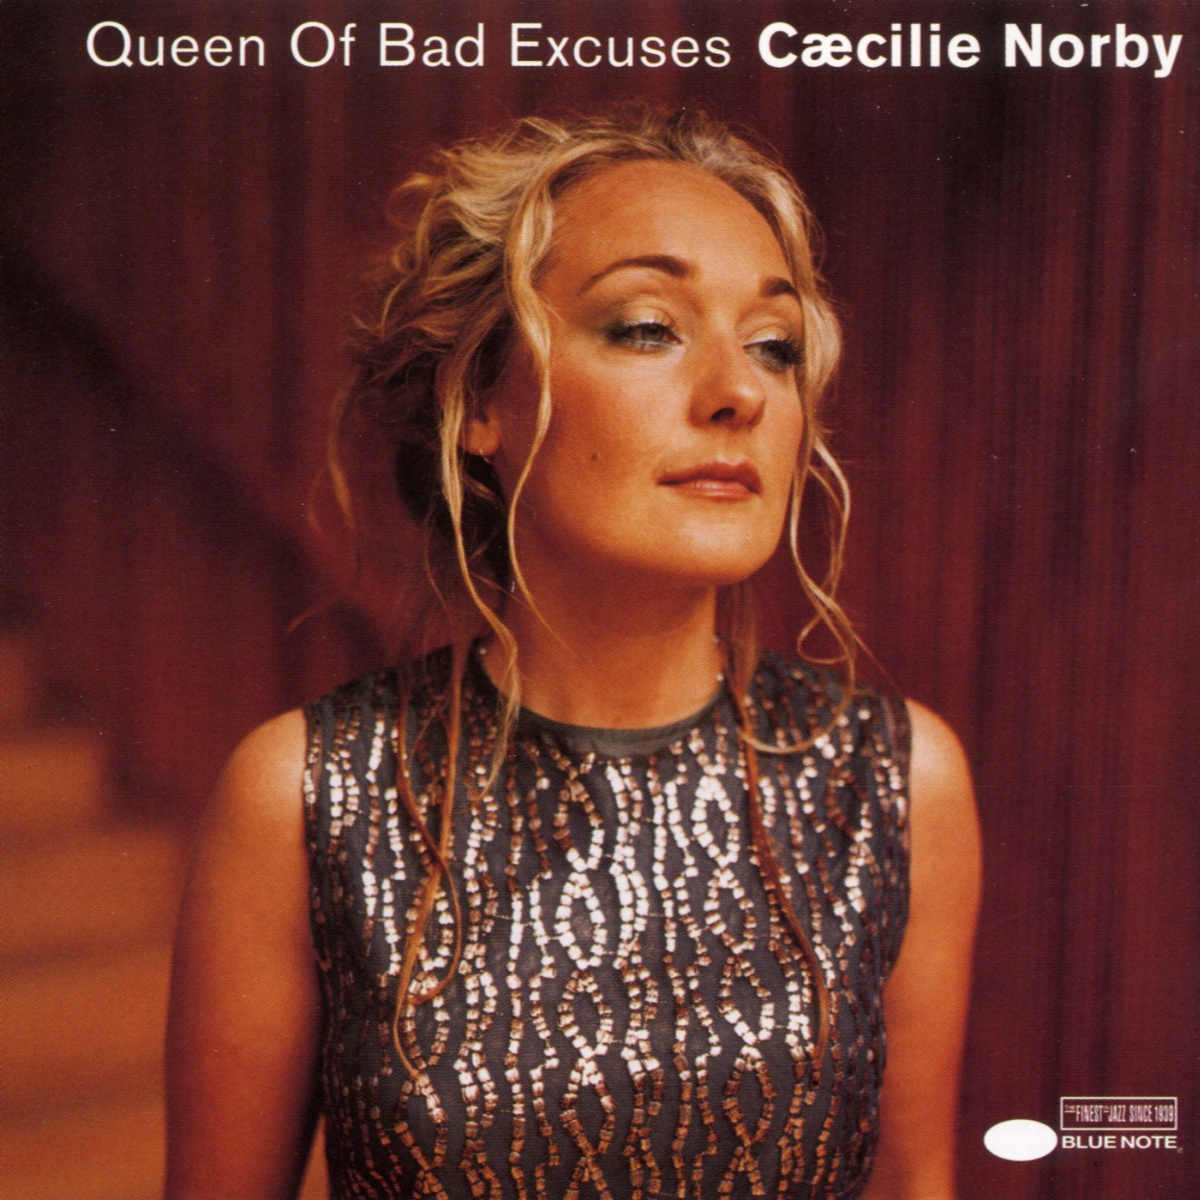 Queen of Bad Excuses - Caecilie Norby - Musik - BLUE NOTE - 0724352234226 - Sep 25, 2000